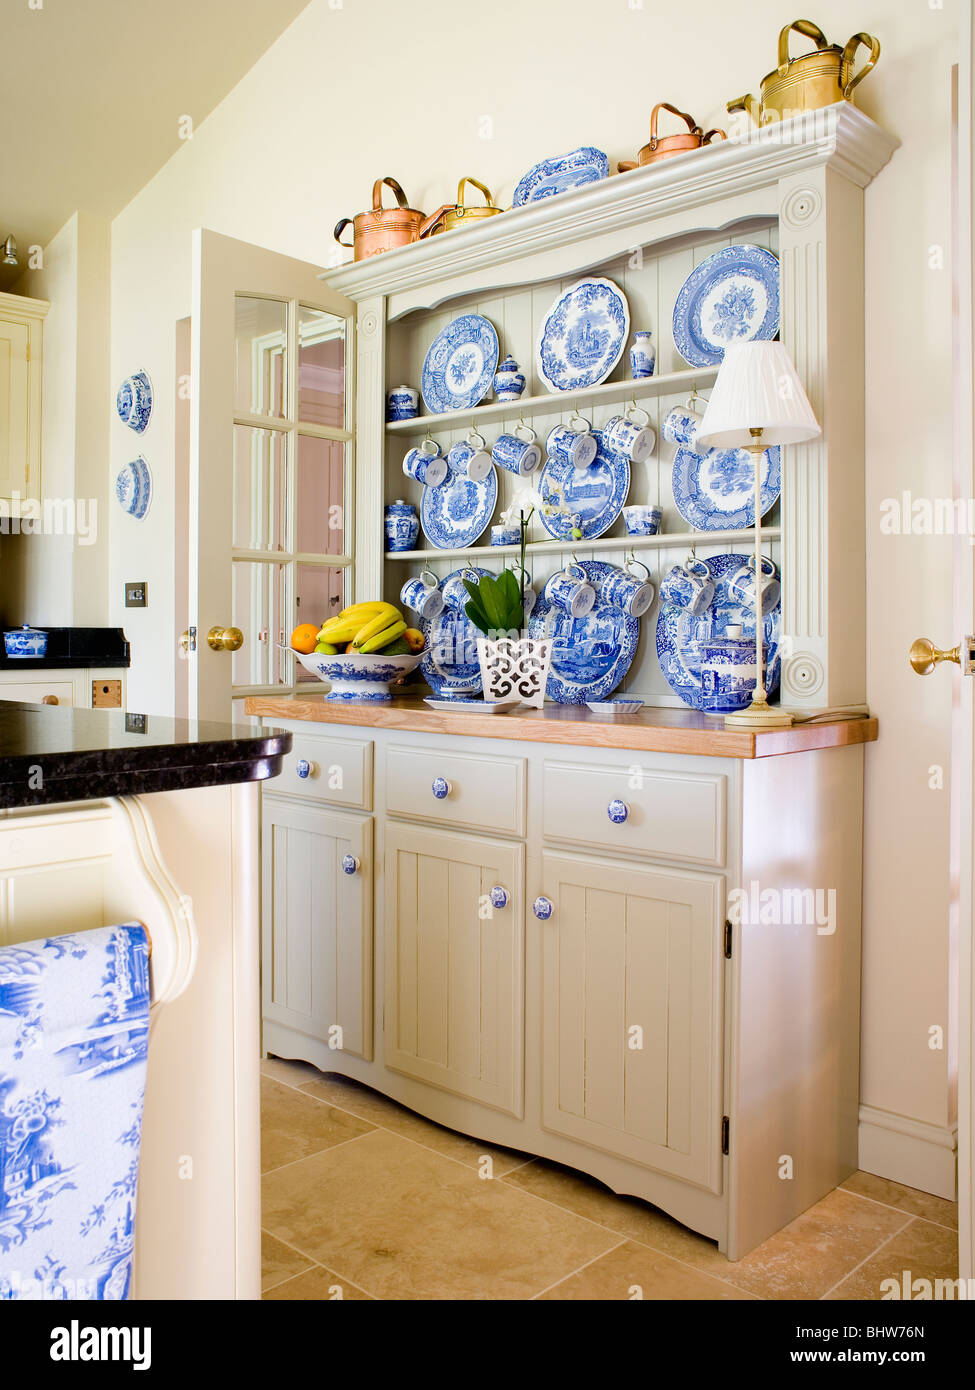 Collection Of Blue White China On Fitted Cream Dresser In